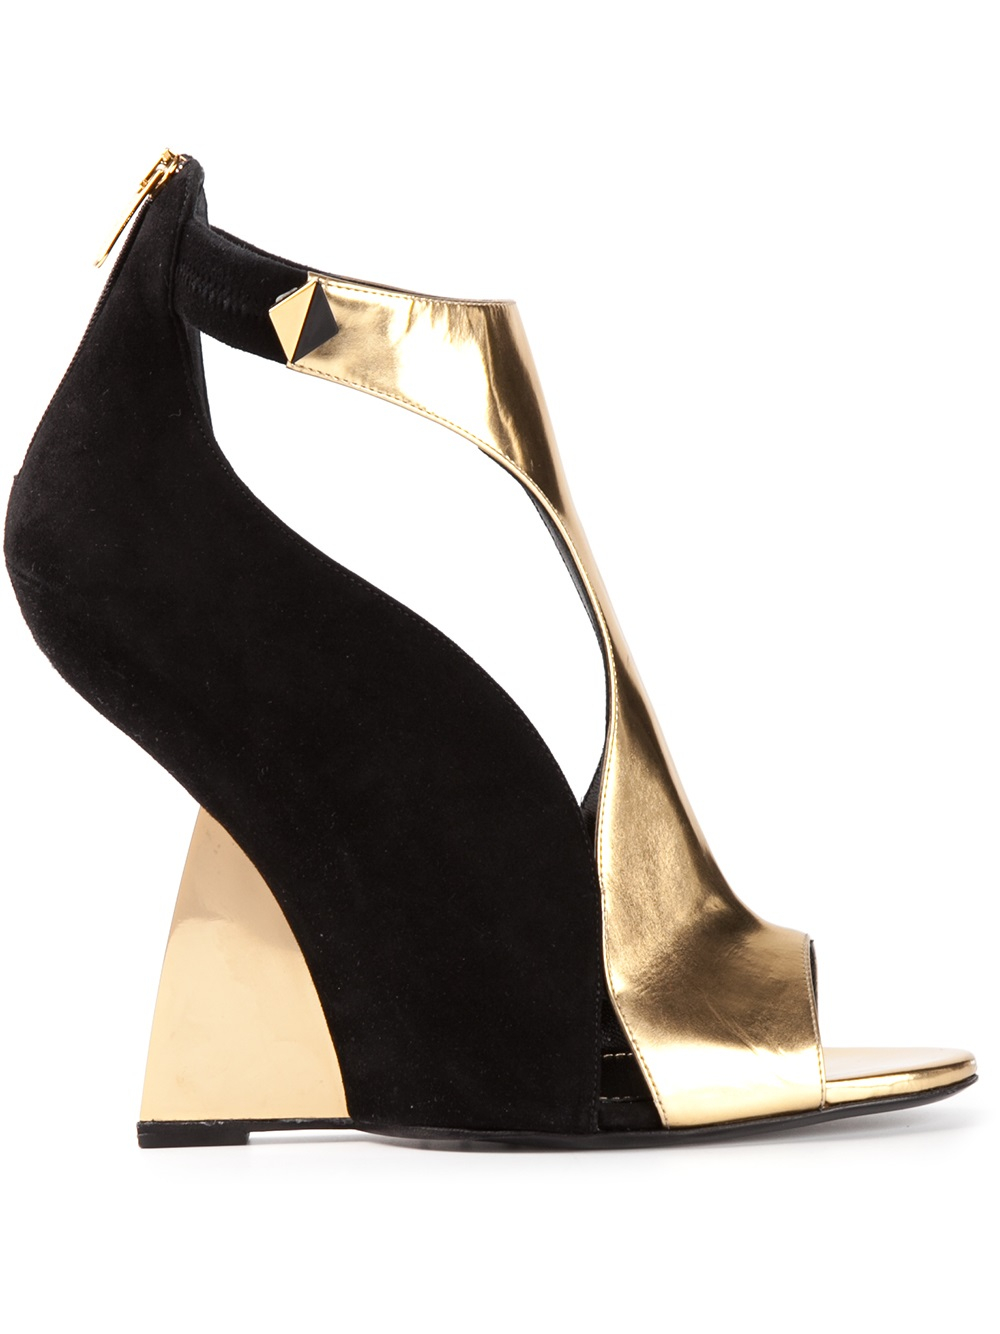 2c9c0551c2c Sergio Rossi Metallic Sculpted Wedge Sandals